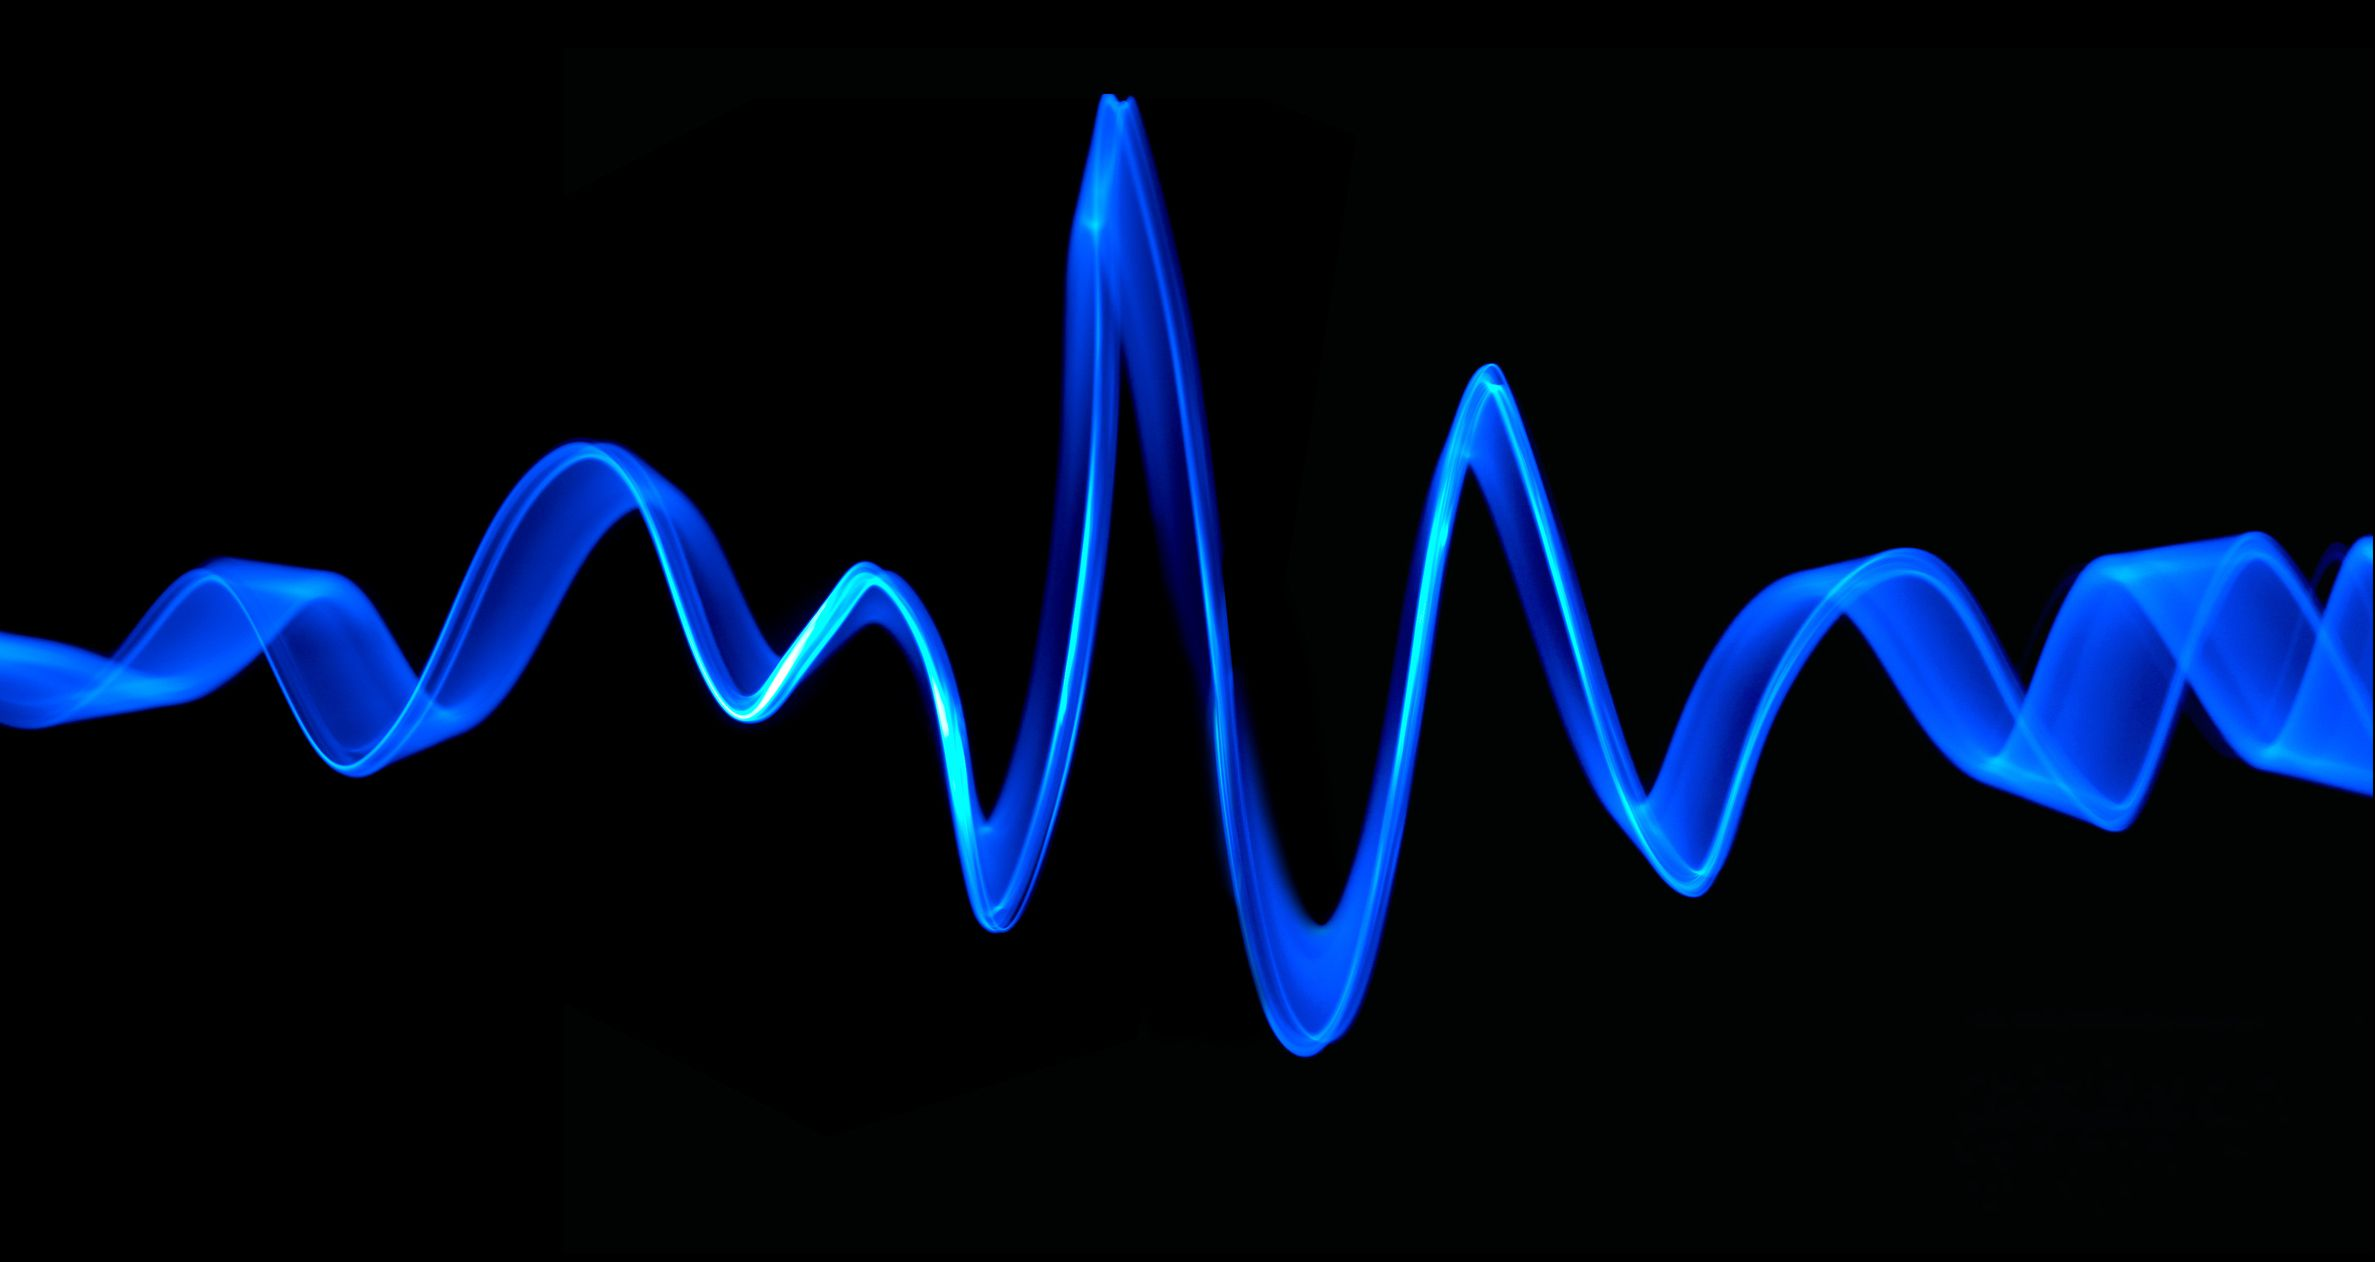 The Doppler Effect For Sound Waves